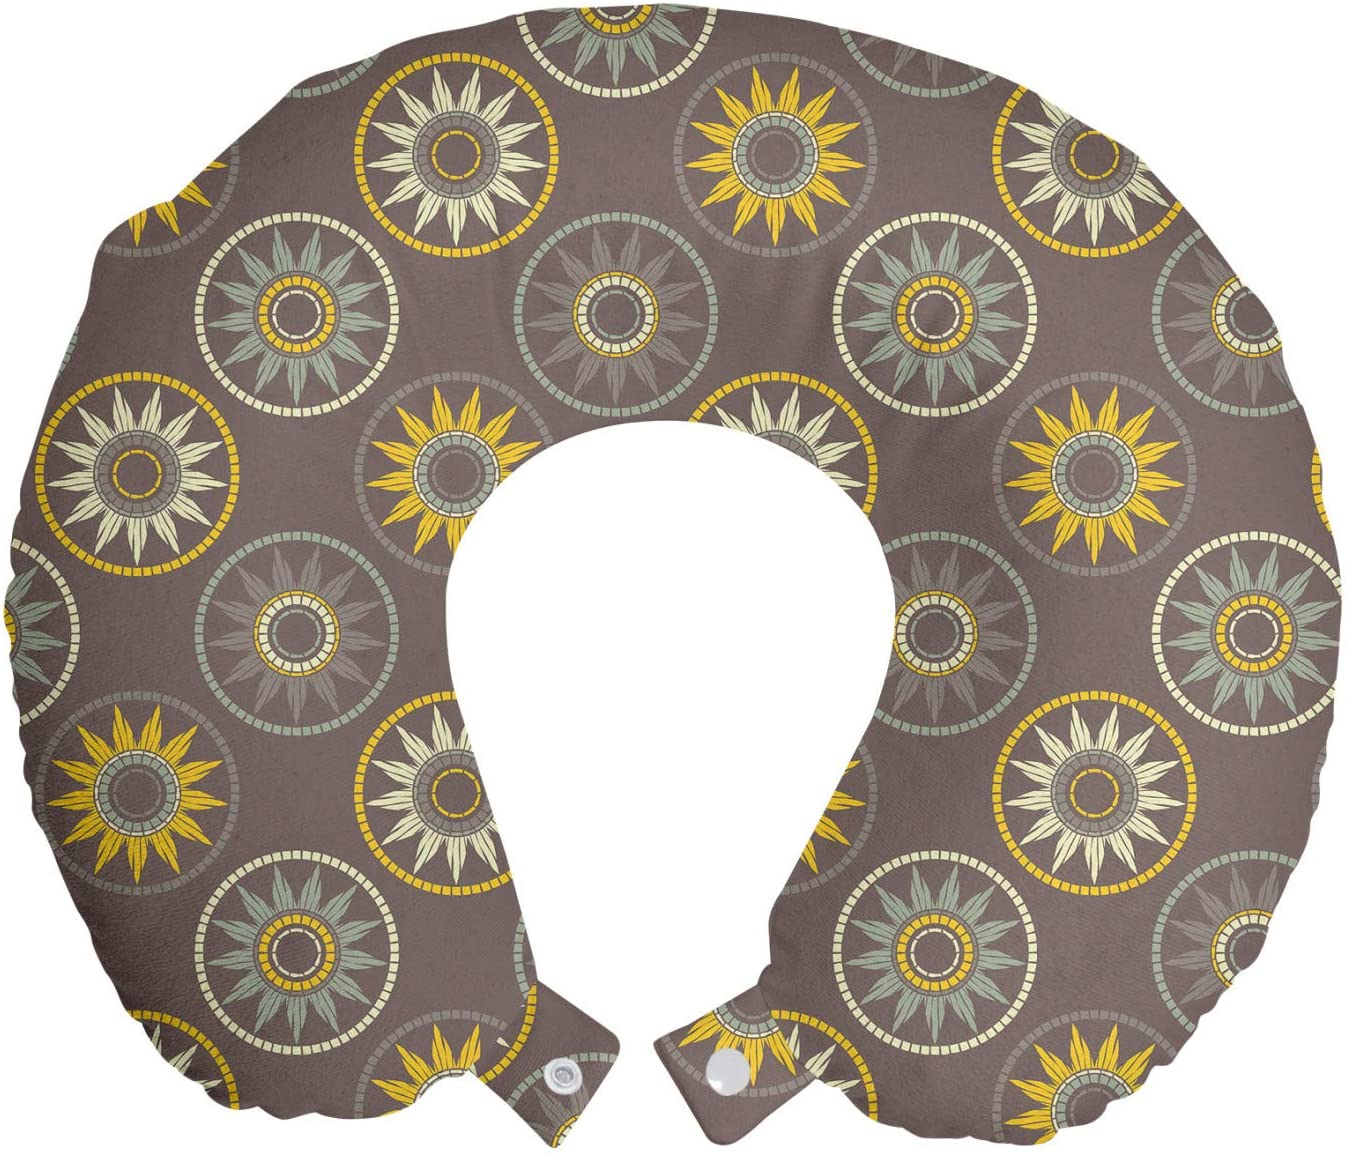 Ambesonne Boho Travel Pillow Neck Rest, Continuous Pastel Sun Motif, Memory Foam Traveling Accessory for Airplane and Car, 12